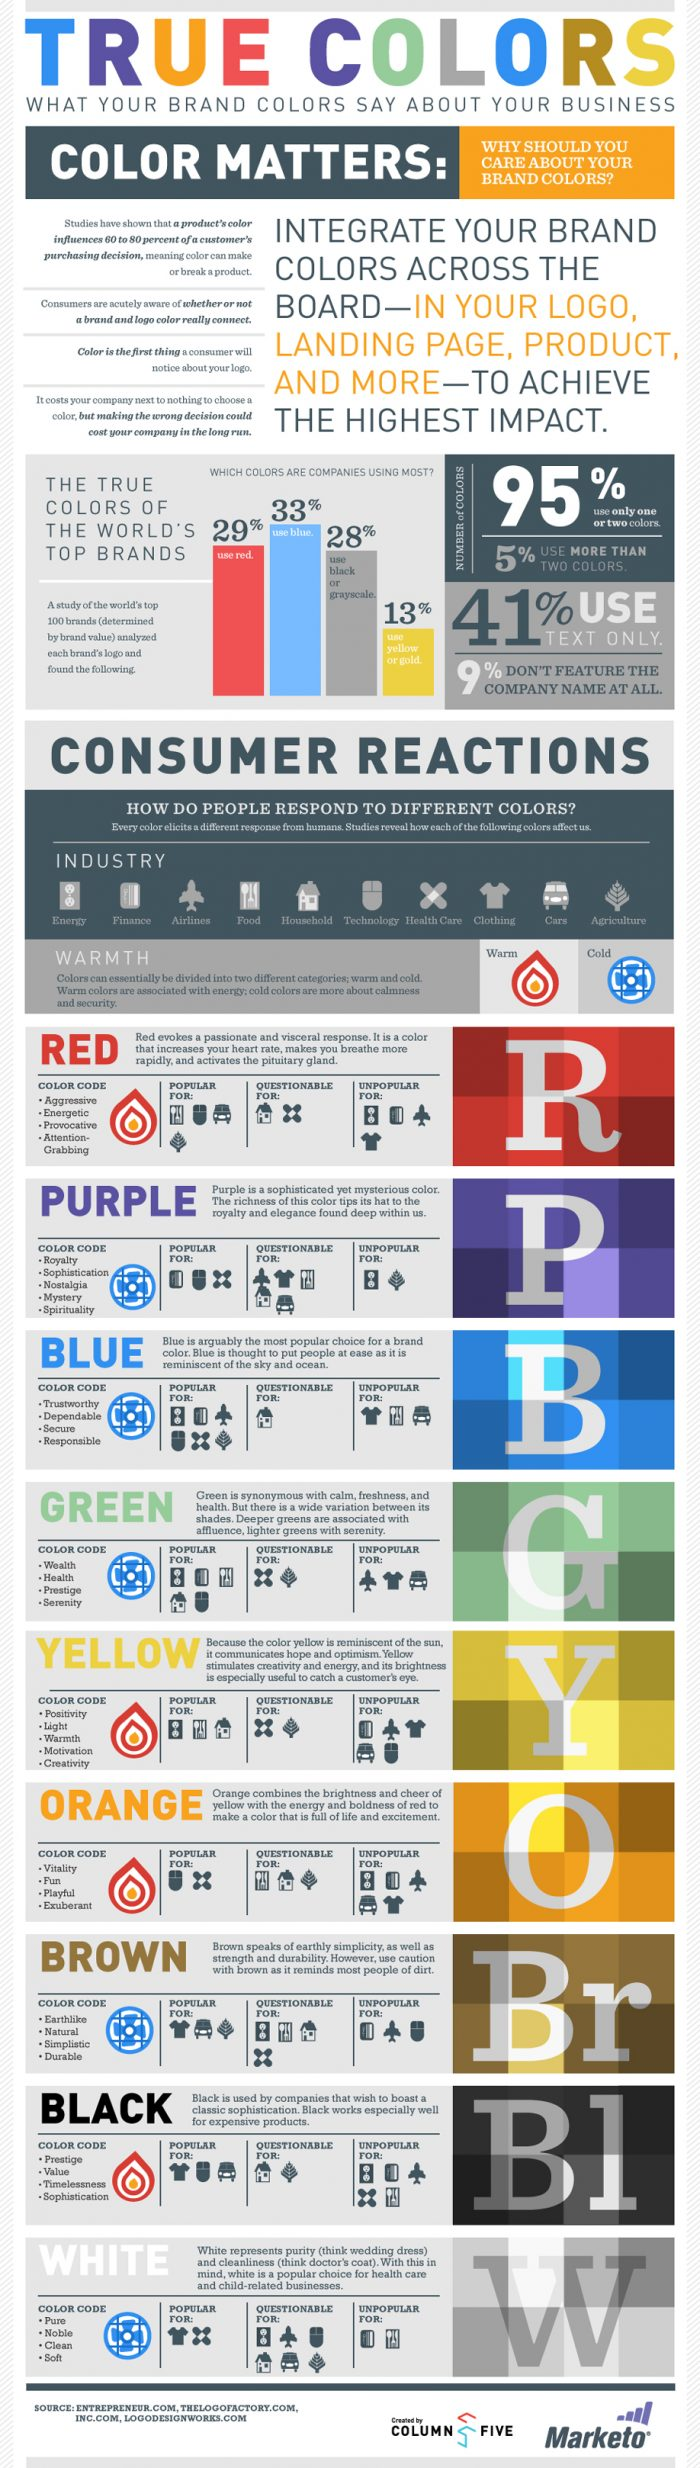 marketo-infographic-true-colors-what-your-brand-colors-say-about-your-business-700x2468